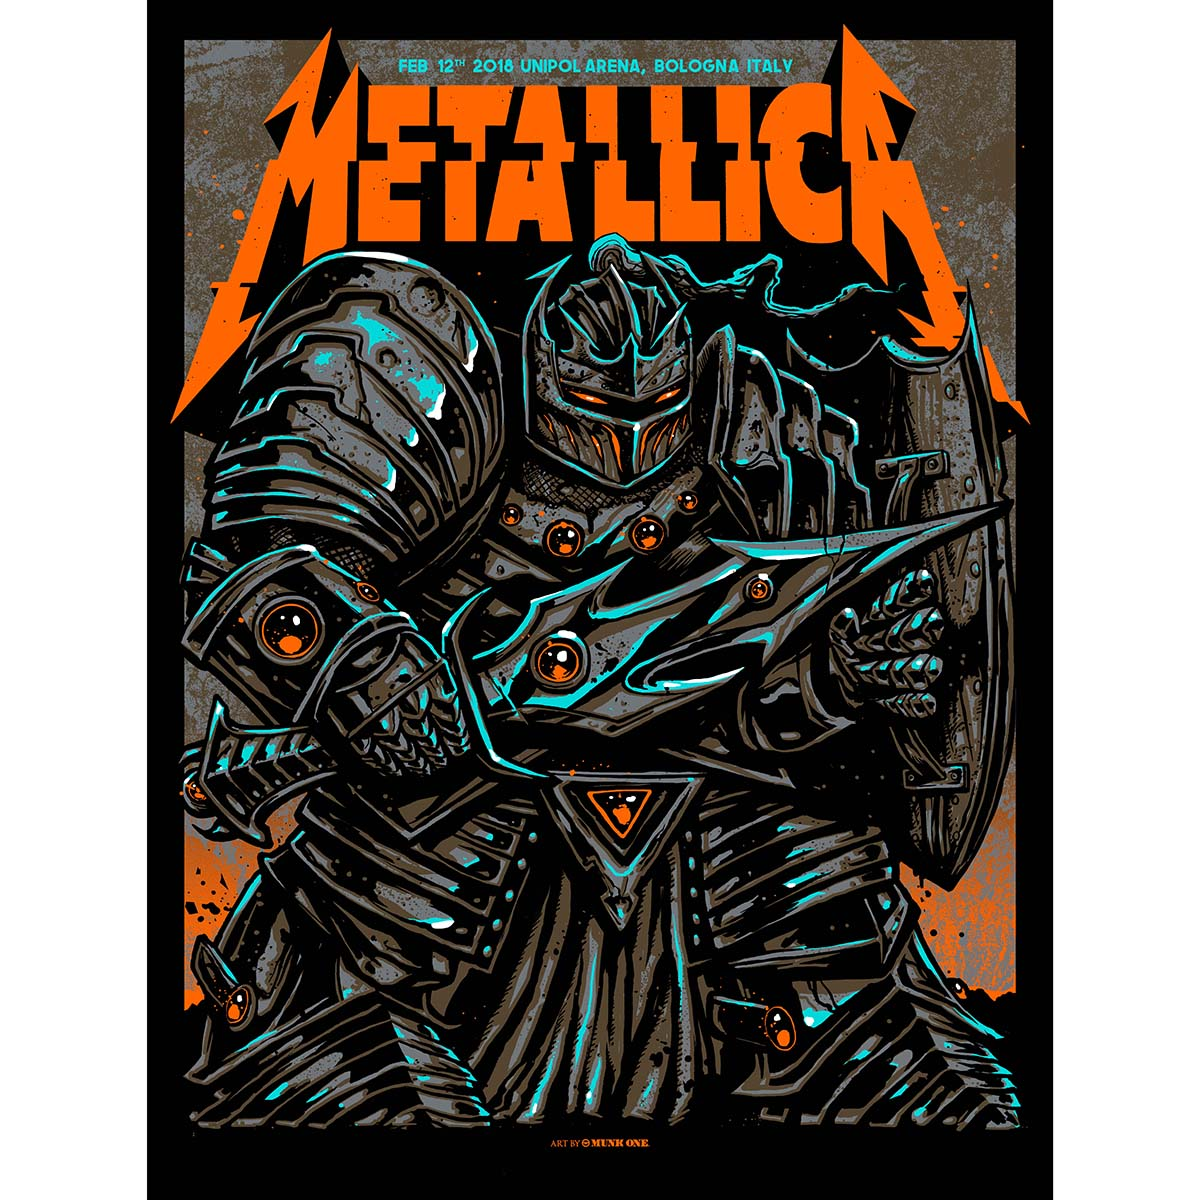 Bologna Feb 12th – Limited Edition Numbered Screen Printed Event Poster - Metallica